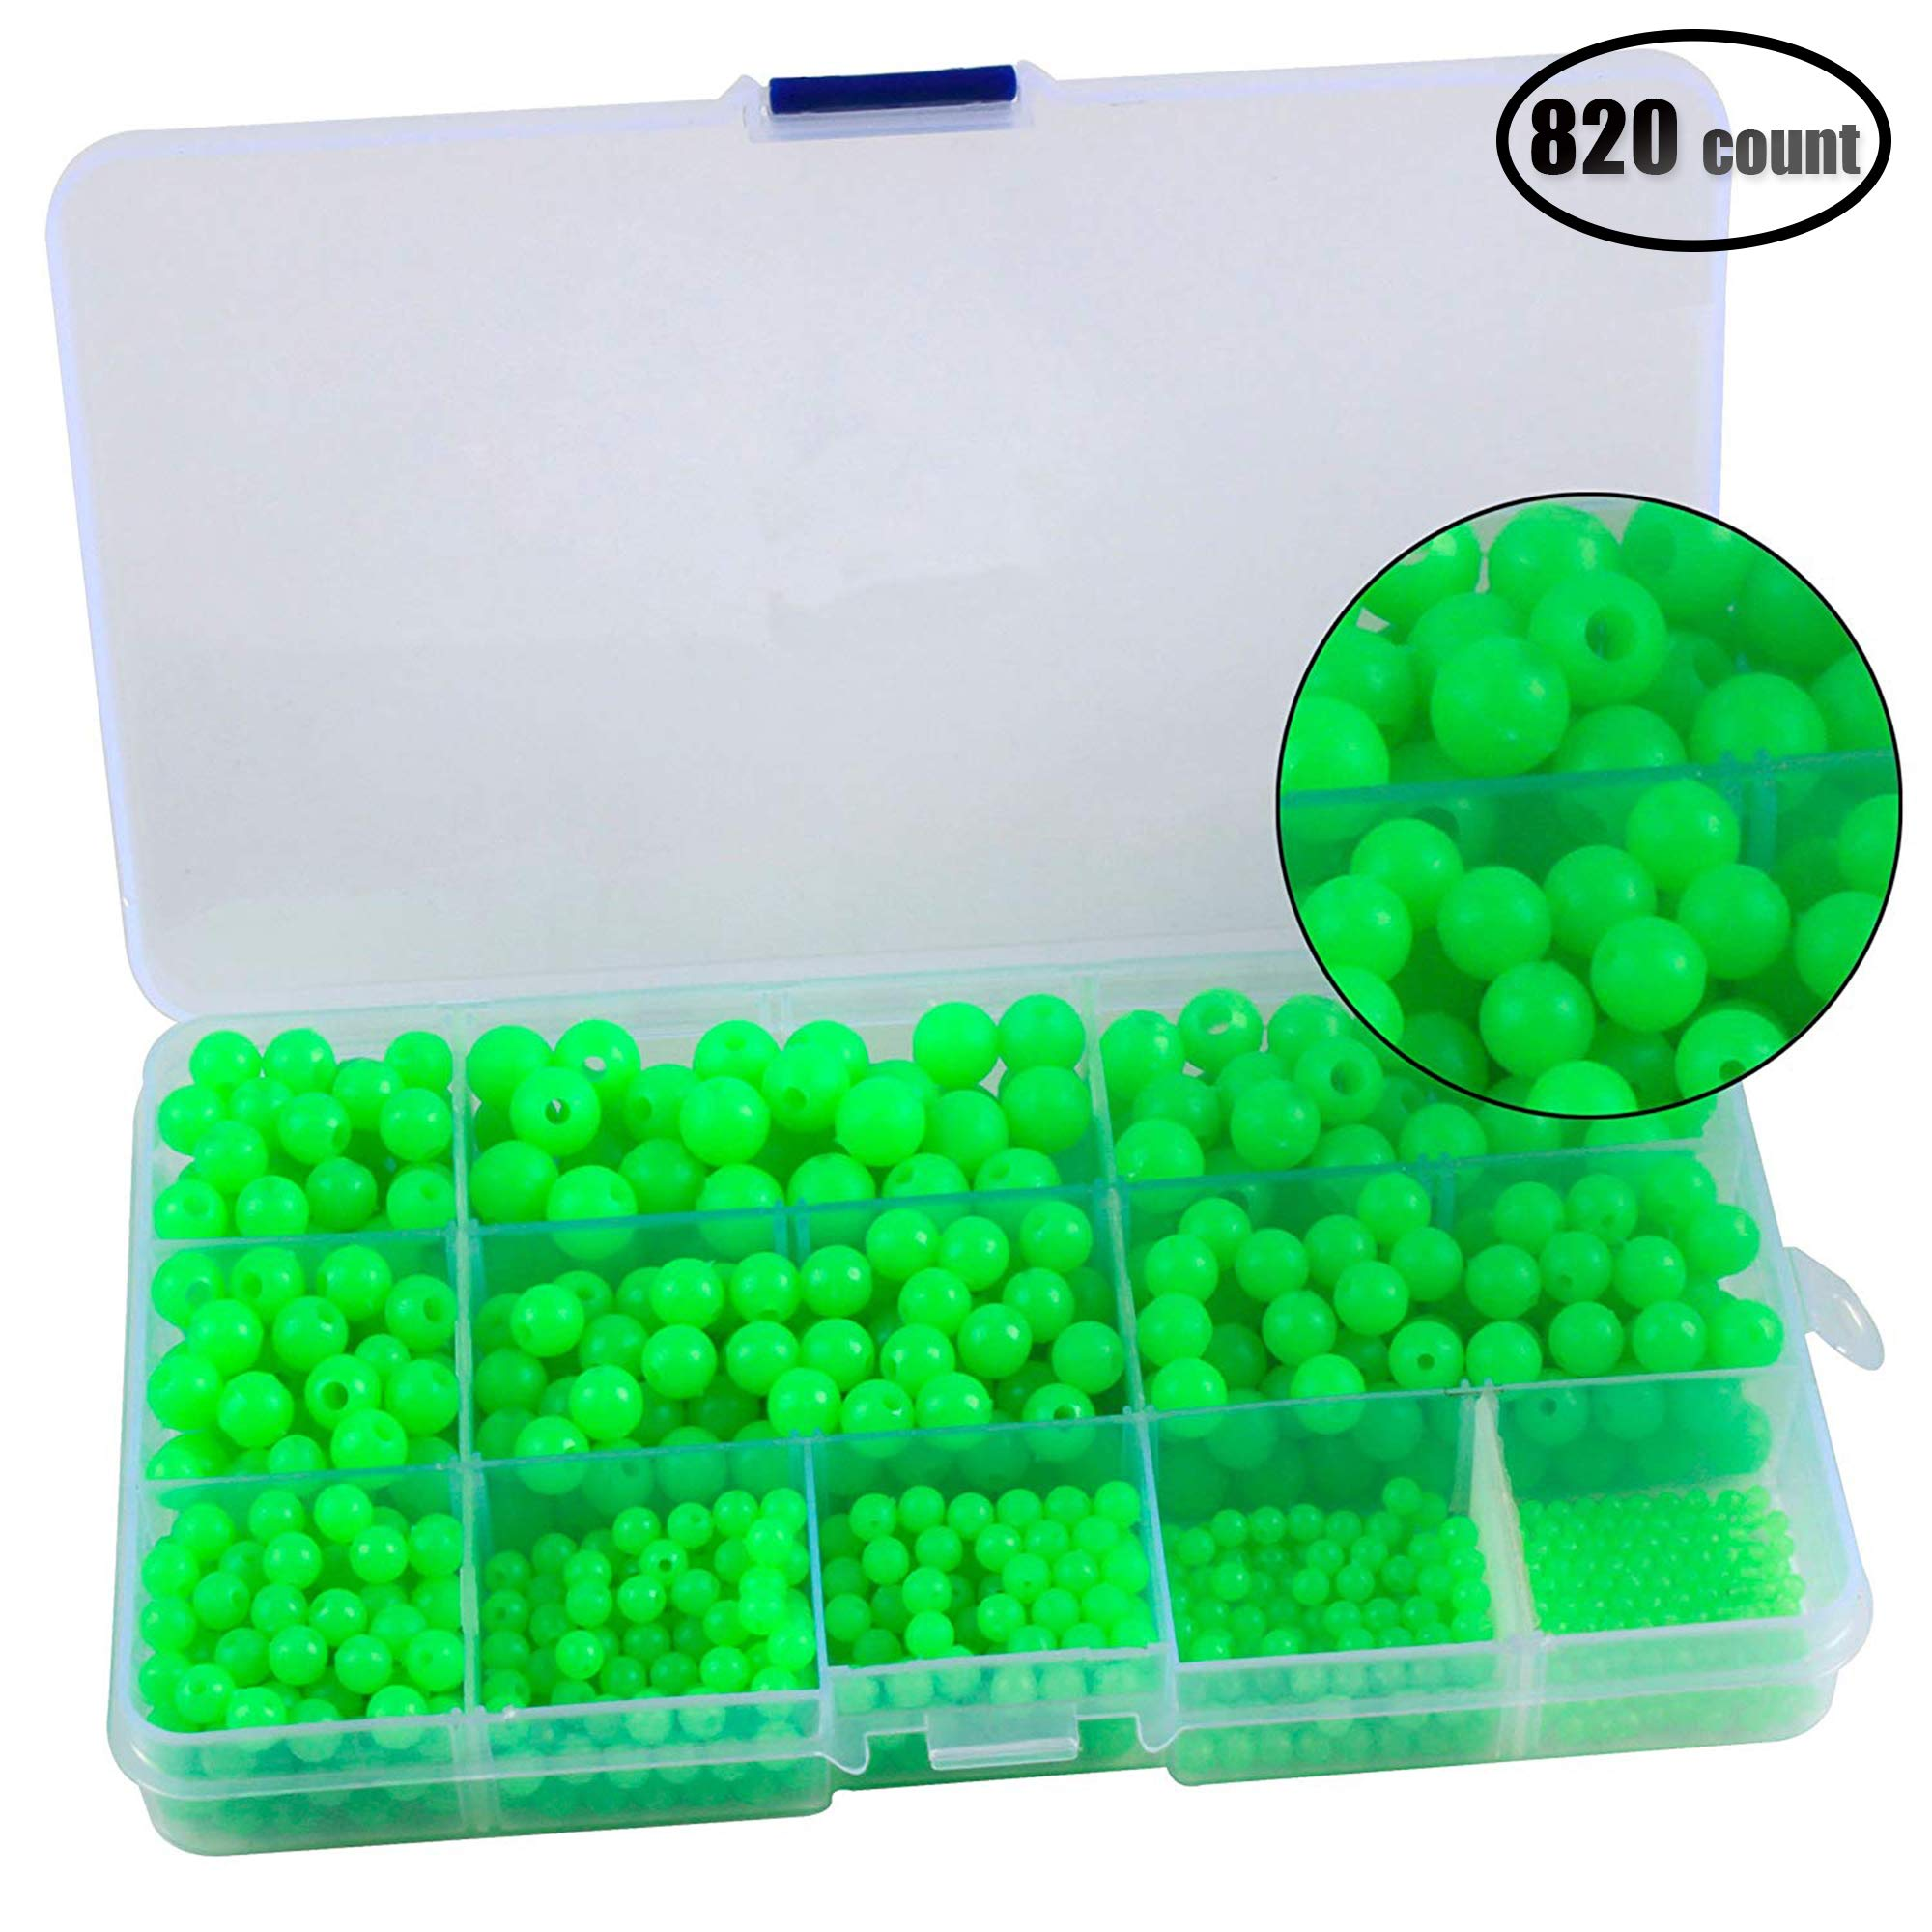 IZTOSS 820pcs/box 3-10mm Round Shaped Glow Fishing Beads Eggs Kit Accessories for Rigs Leaders